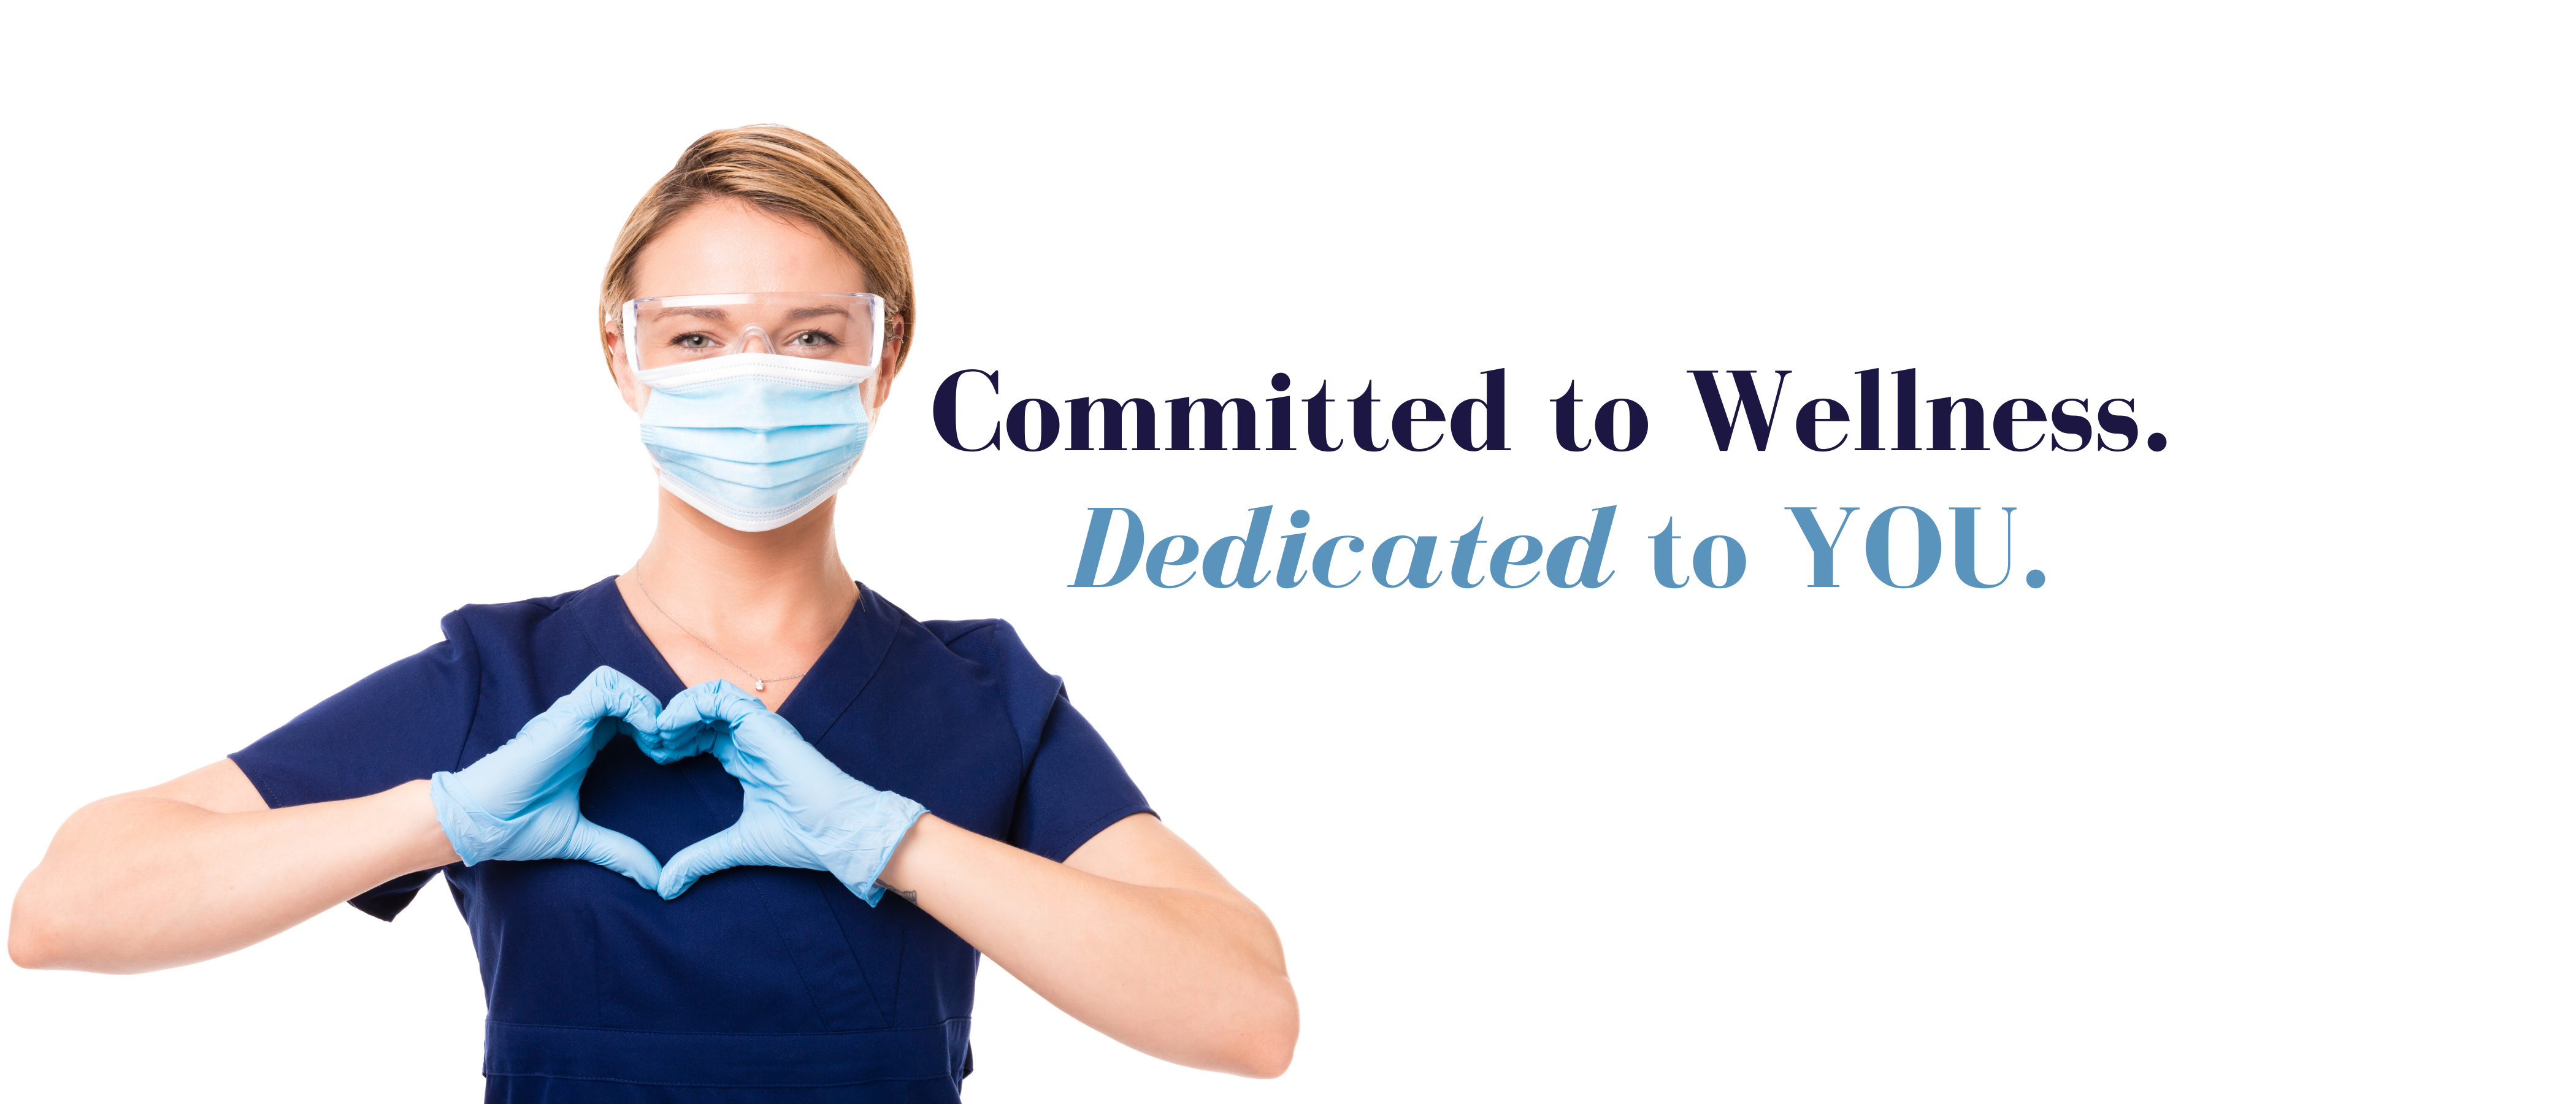 Committed to Wellness Dedicated to You